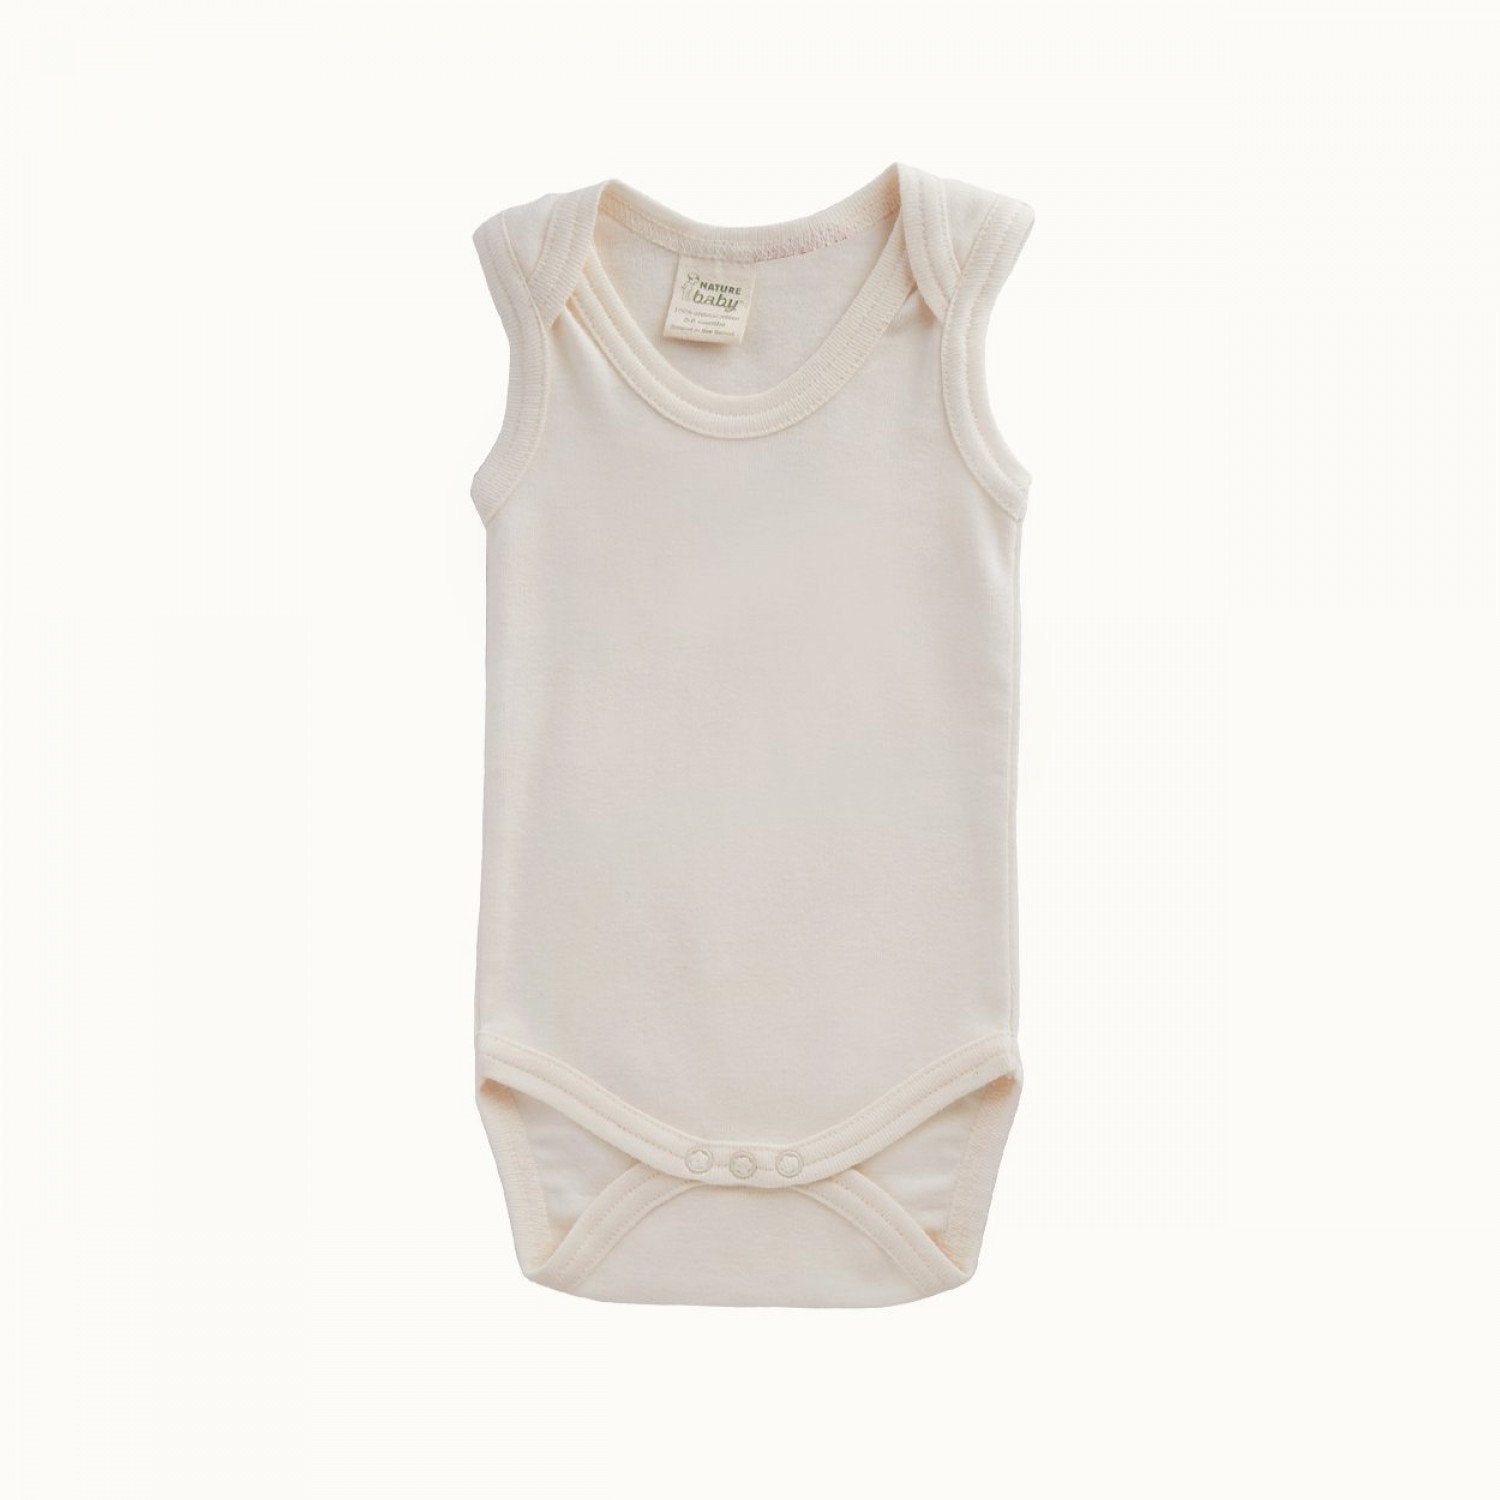 Natural / 0-3 Months Nature Baby Organic Cotton Singlet Onesie (Multiple Variants) - Naked Baby Eco Boutique